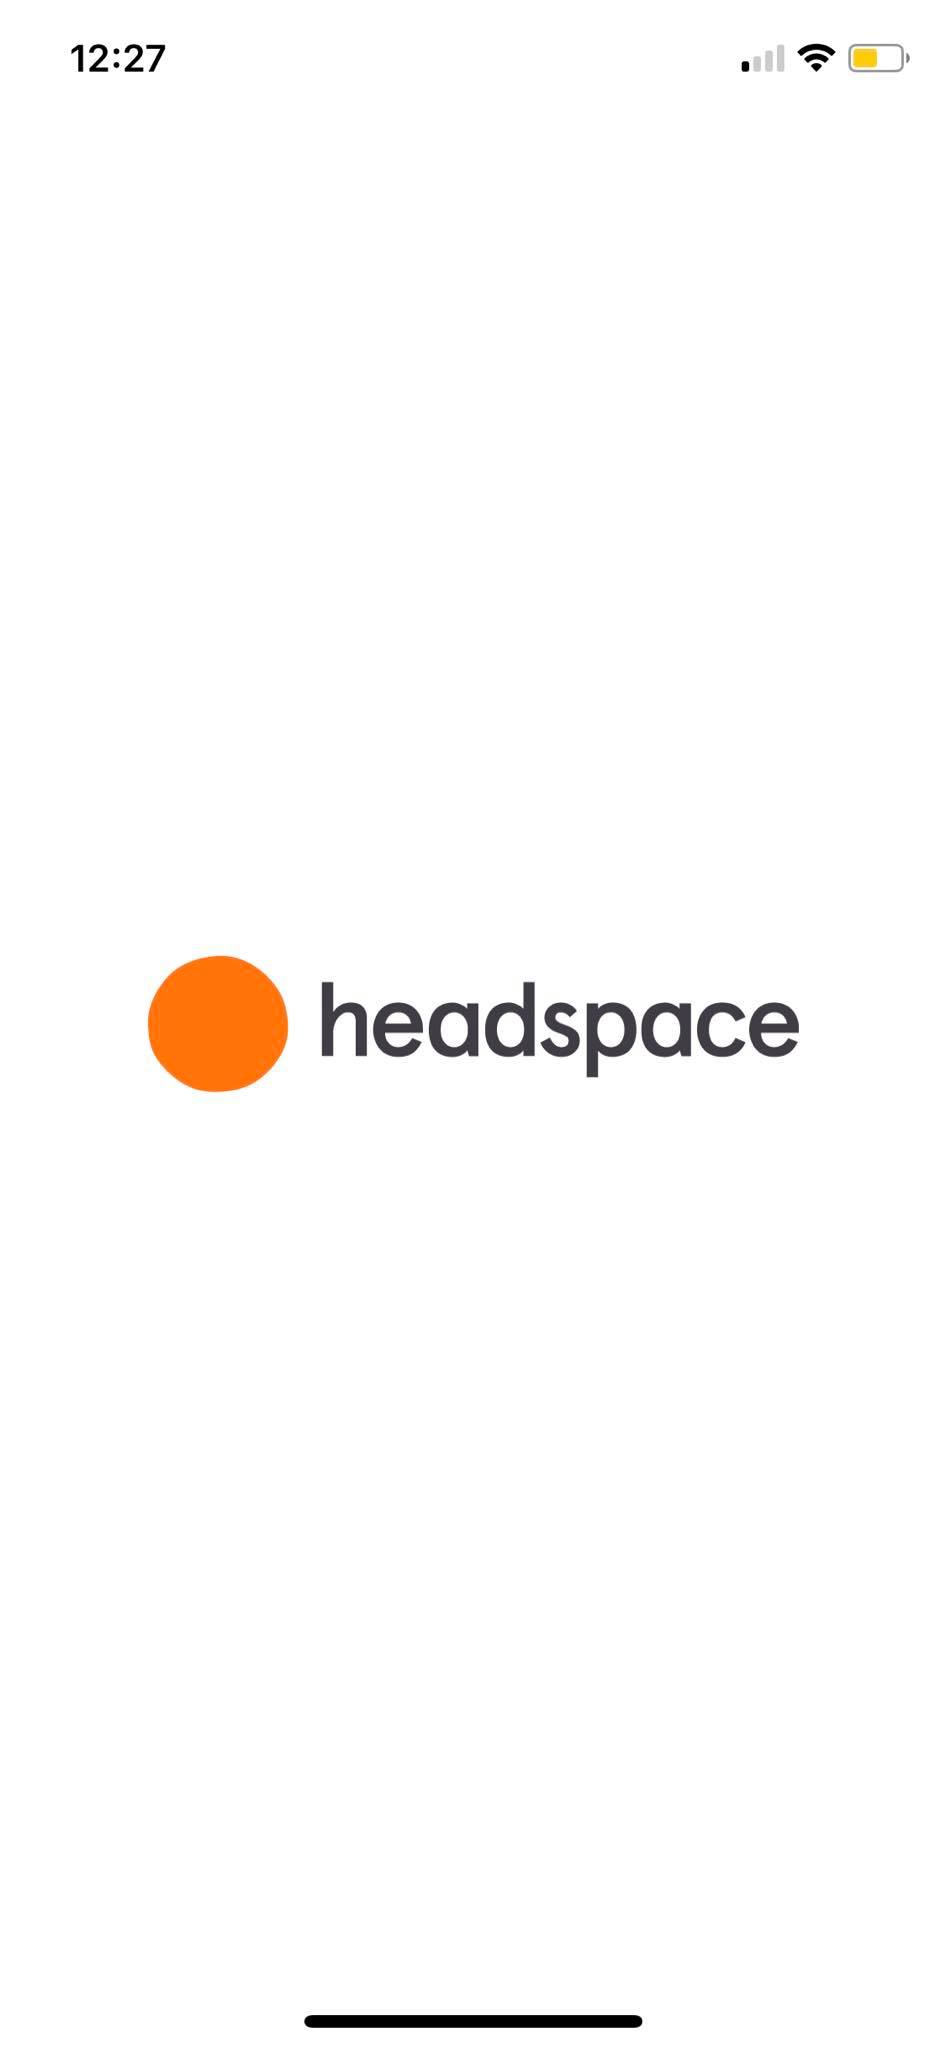 Launch Screen on iOS by Headspace from UIGarage